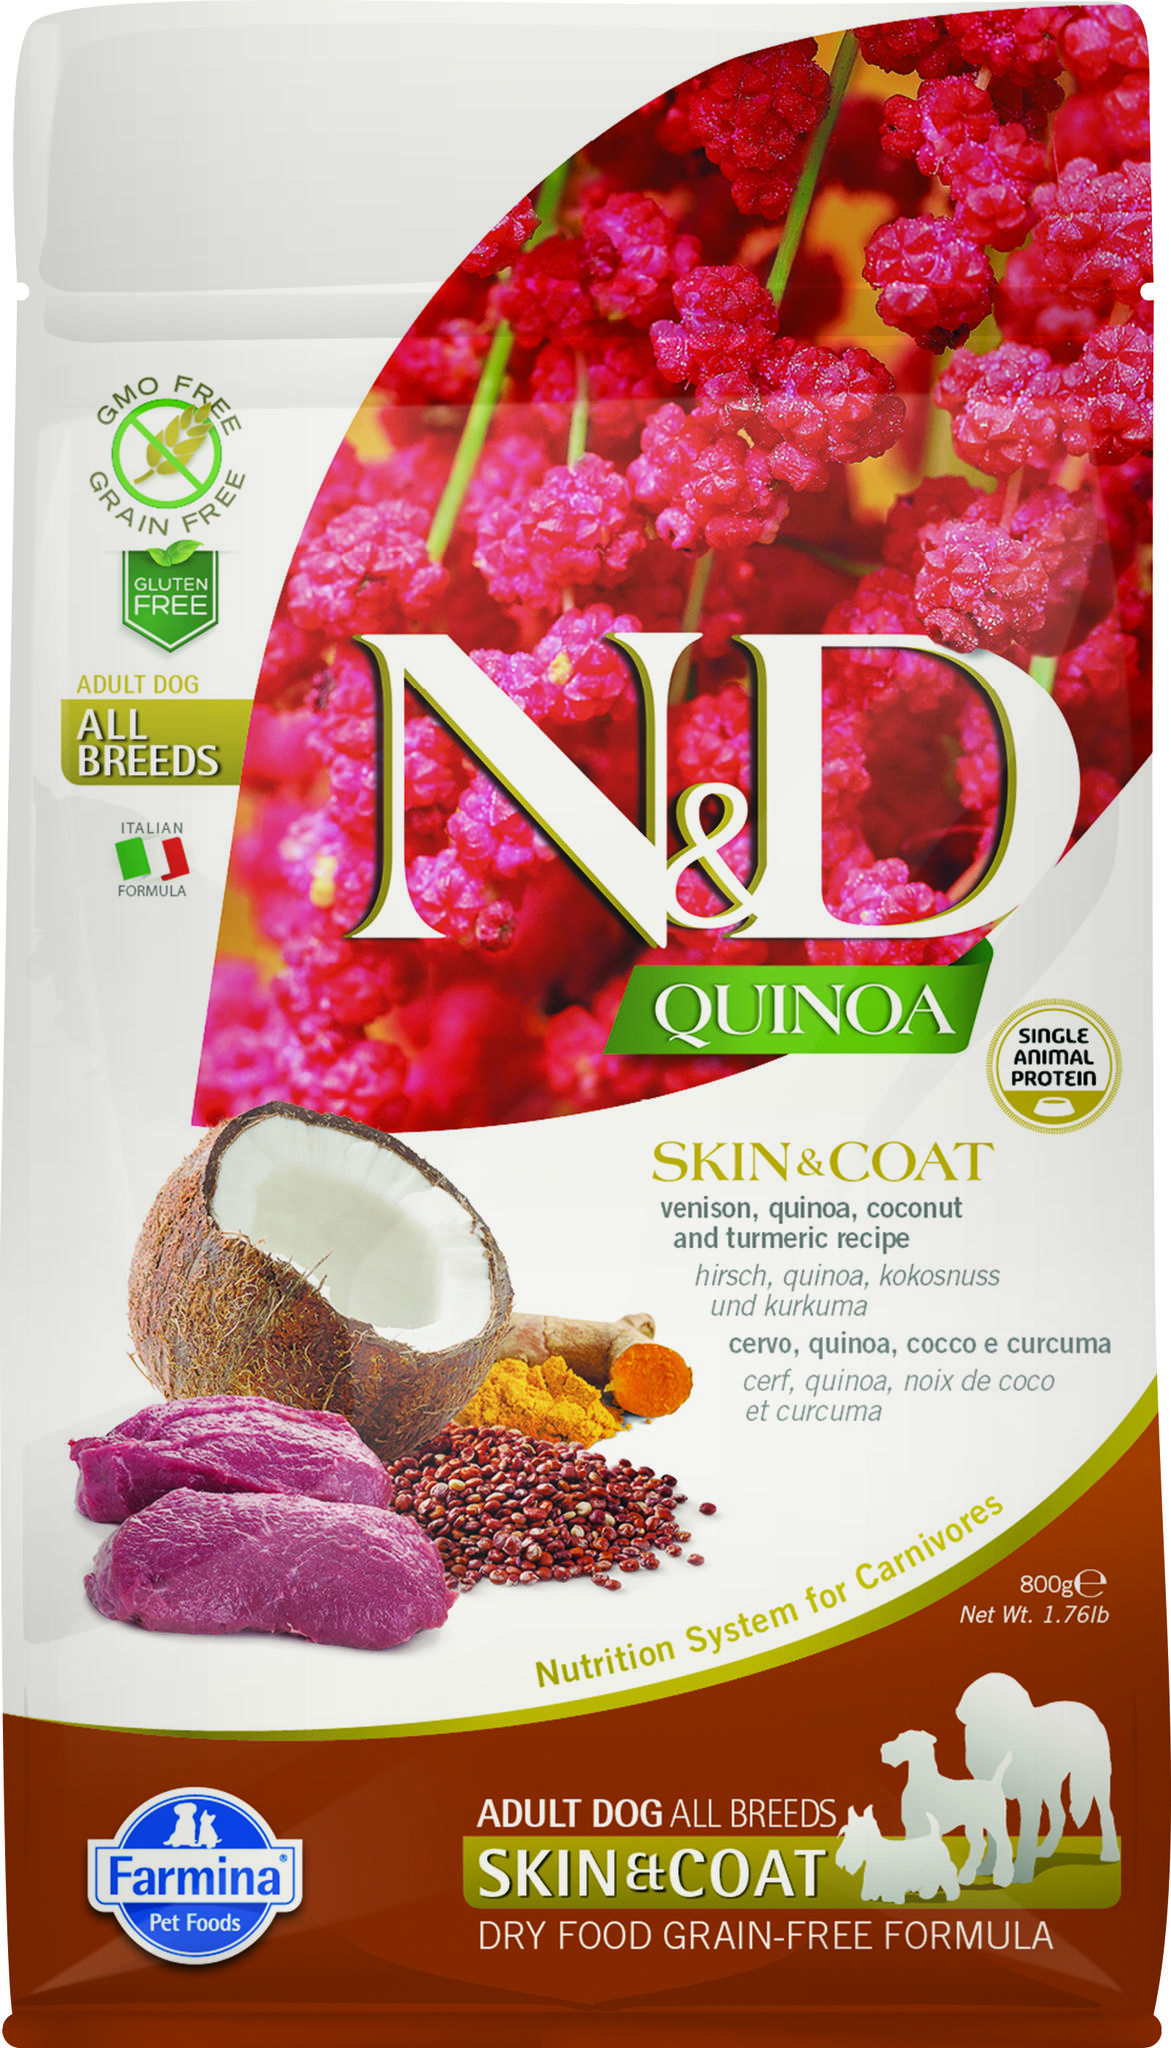 Фармина N&D QUINOA SKIN&COAT VENISON Adult 2,5кг Беззерн. корм д/собак киноа/олен.Здор.кож.и шерс.